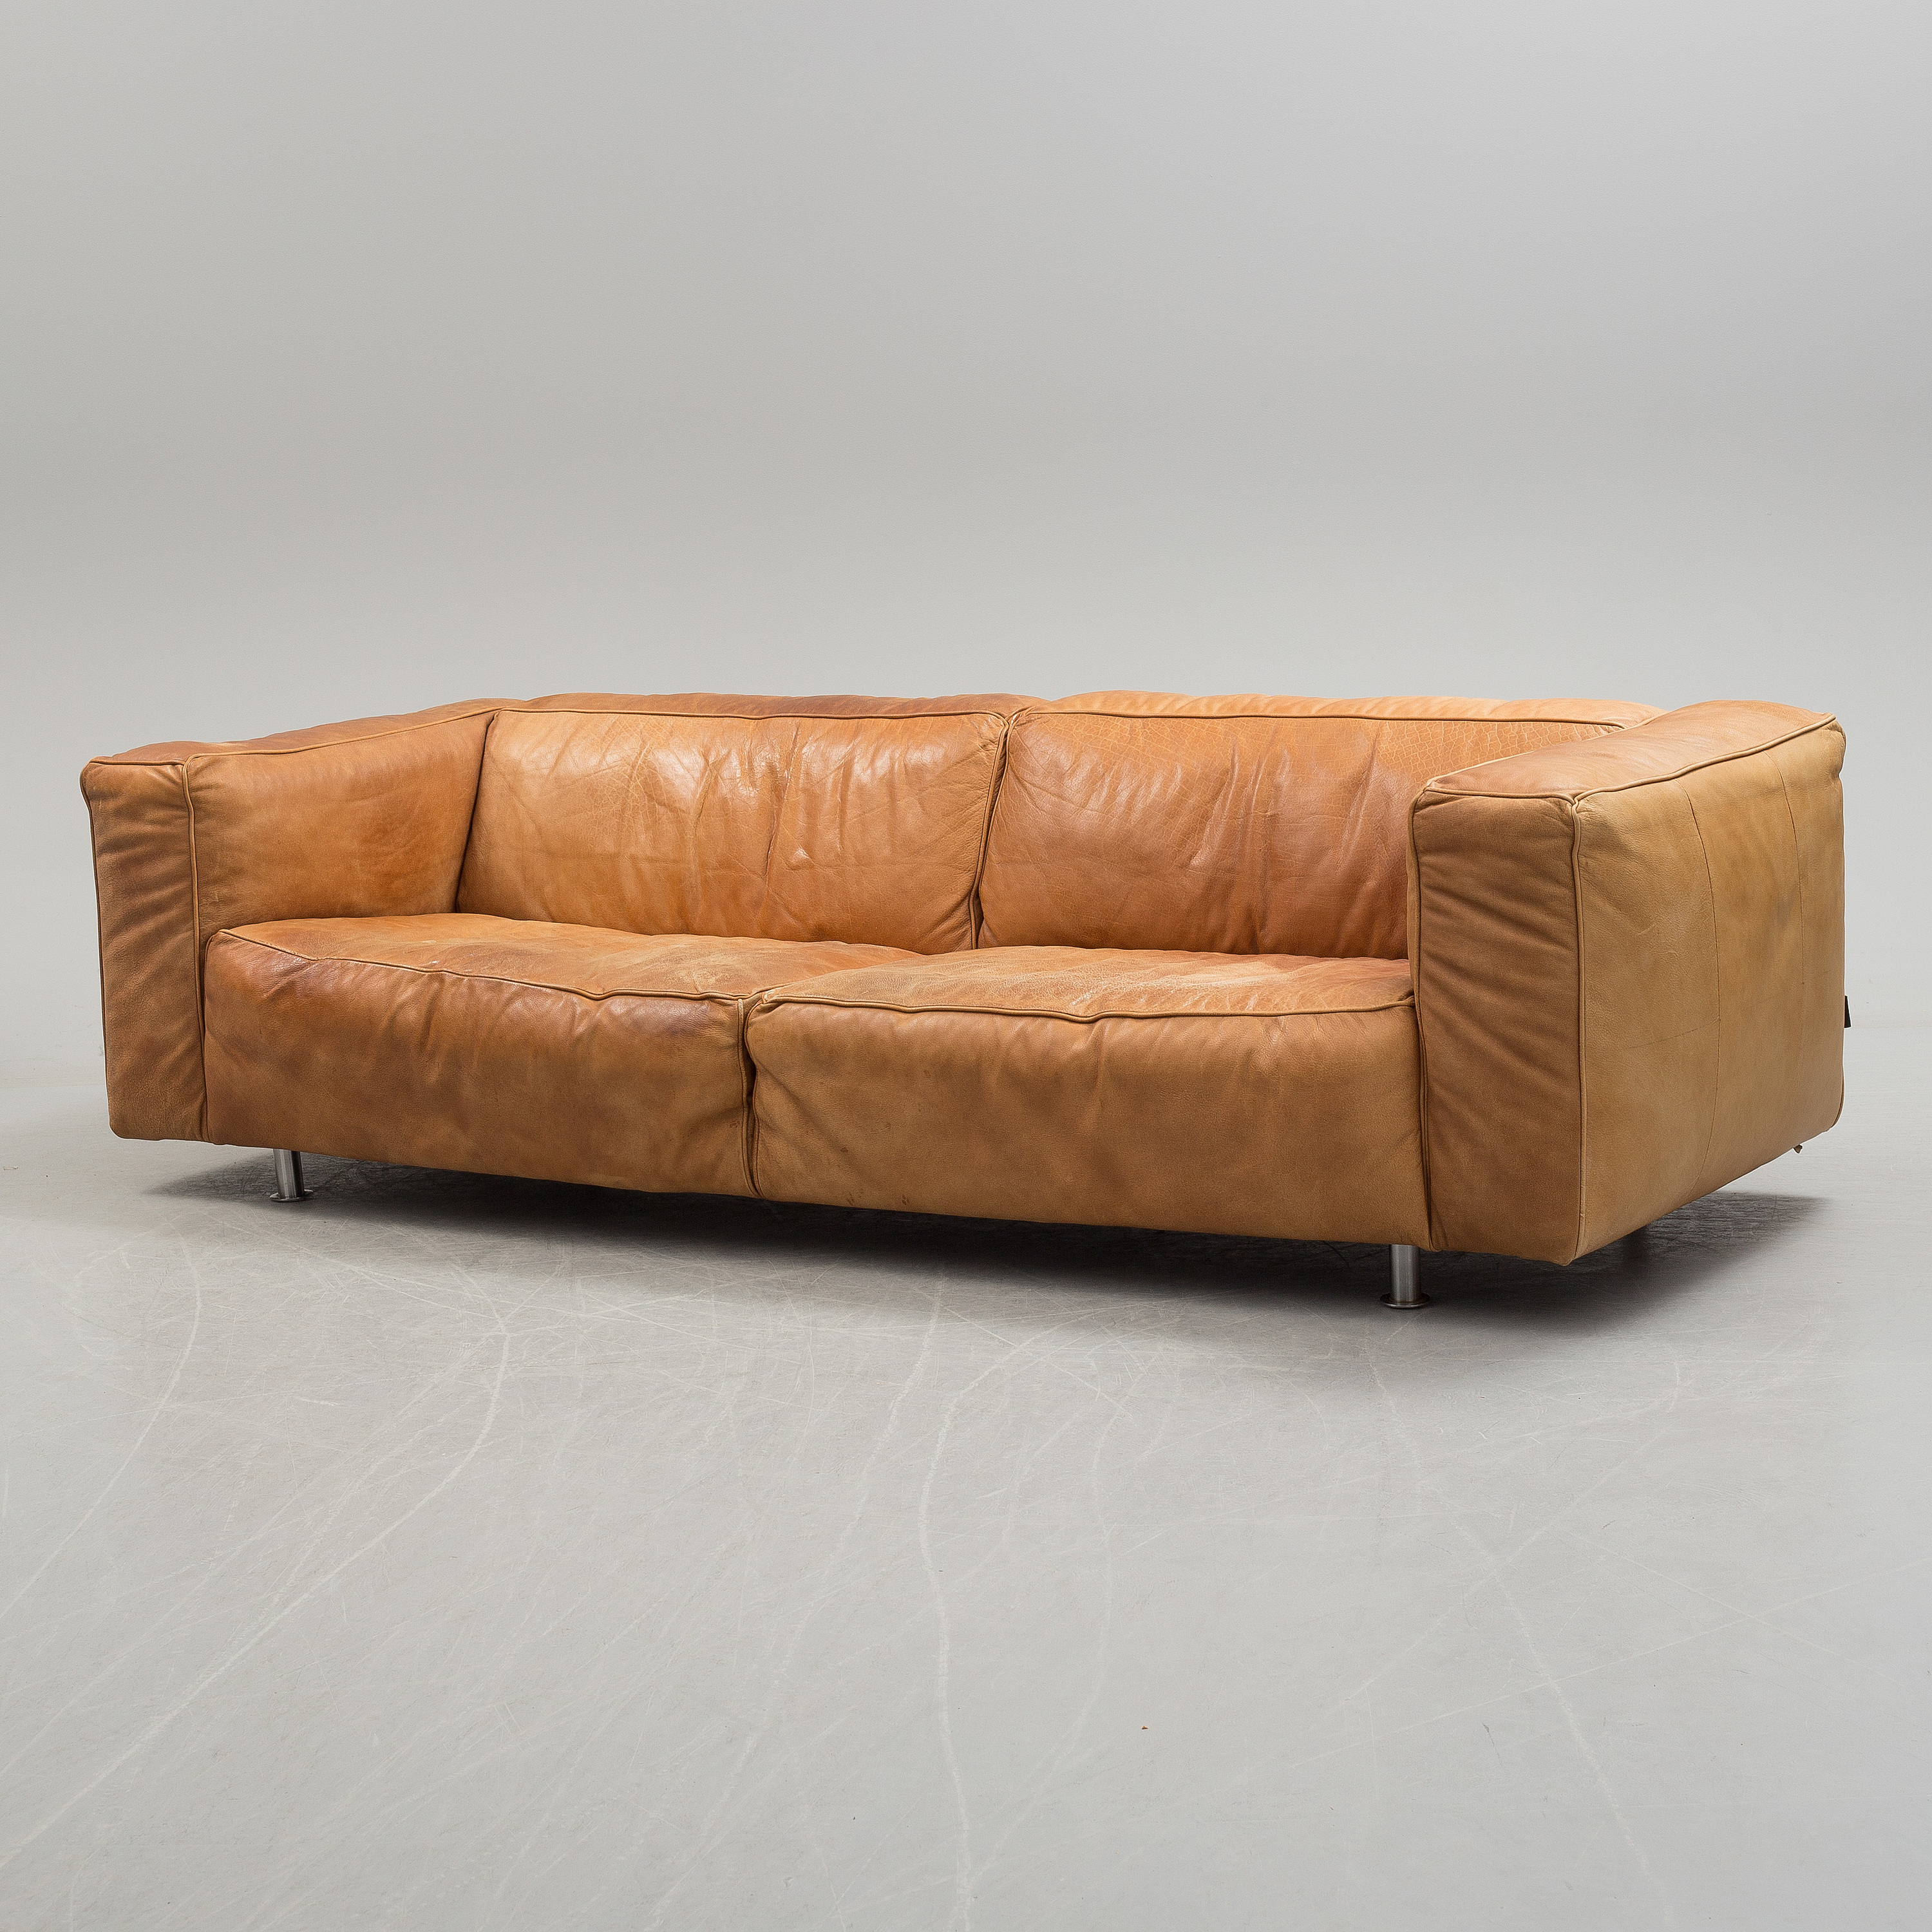 Kartell Sofa Piero Lissoni And Carlo Tamborini A Leather Upholstered Sofa From